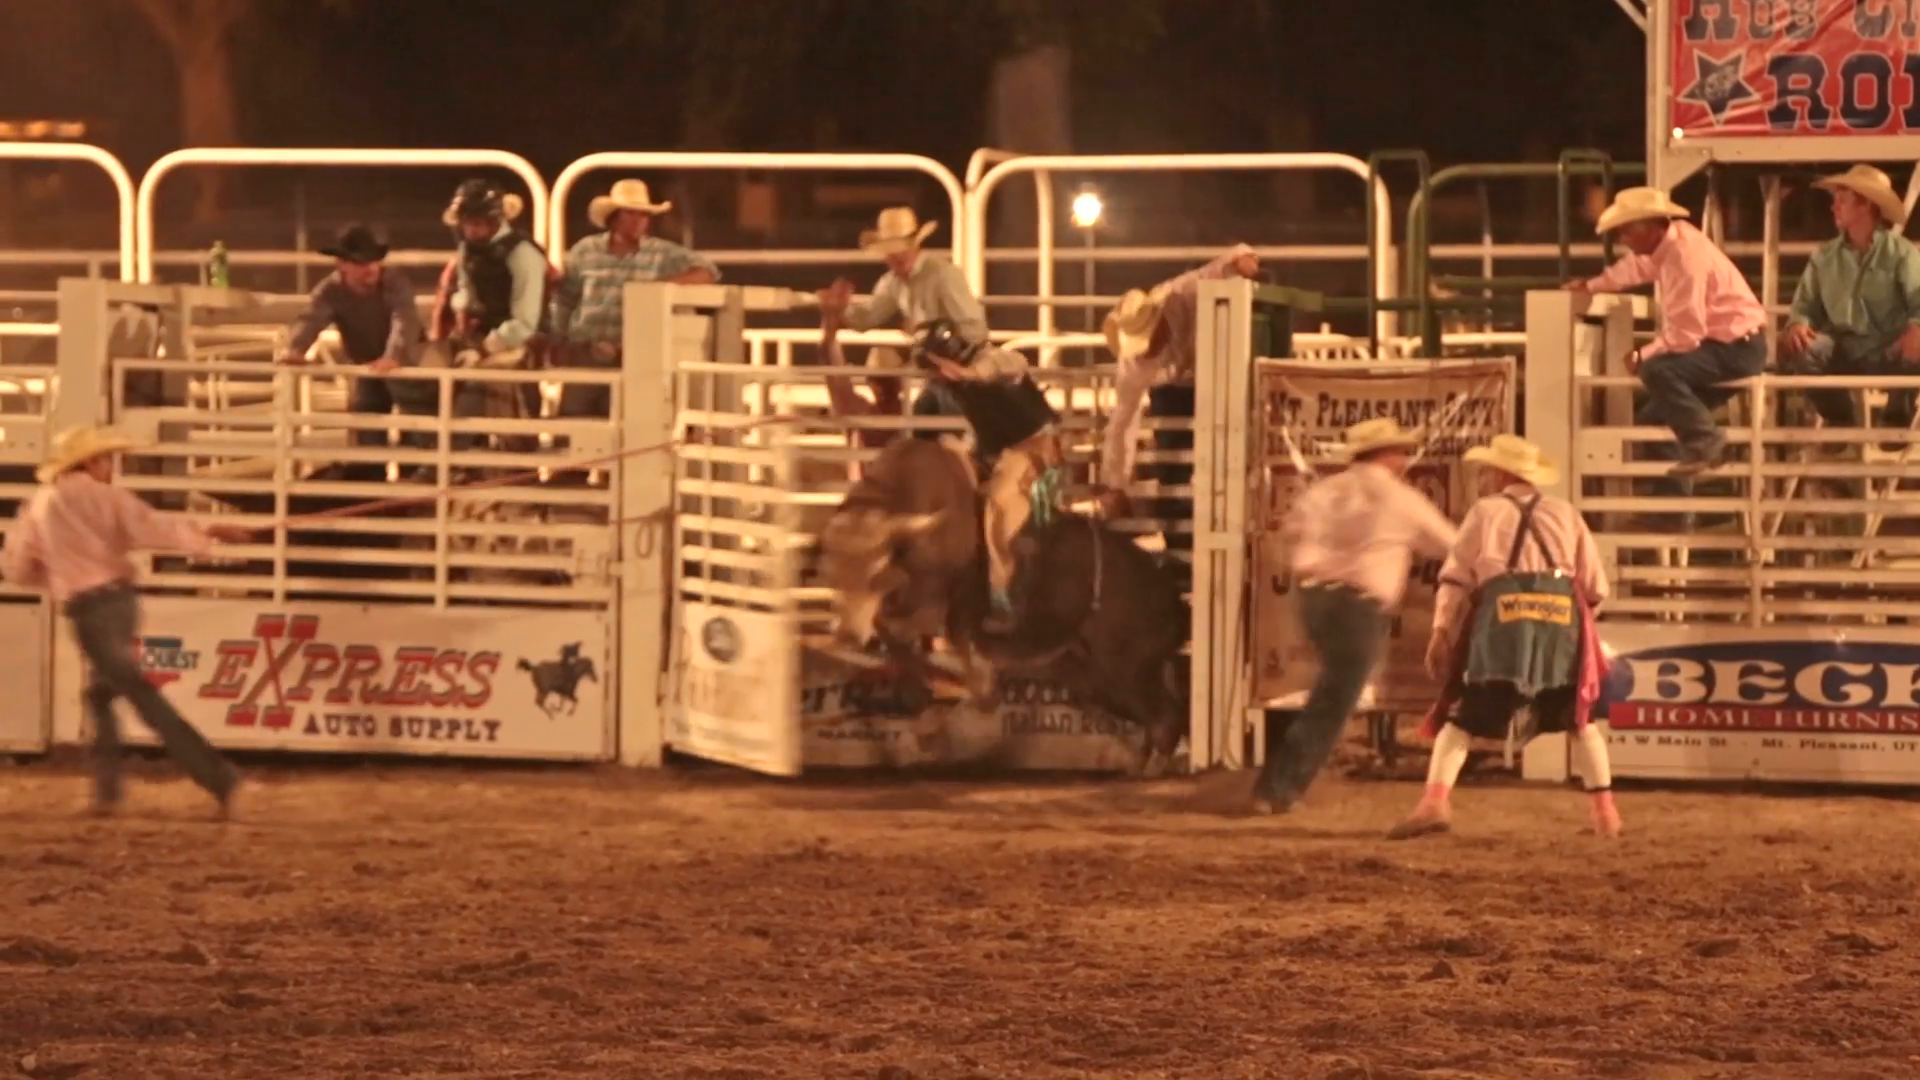 Rodeo bull rider attacked slow motion. Rural fair, rodeo and community  celebration for 4th, fourth of July. Small town fun. Competitors riding  bulls, horses PlusPng.com  - Bull Riding PNG HD